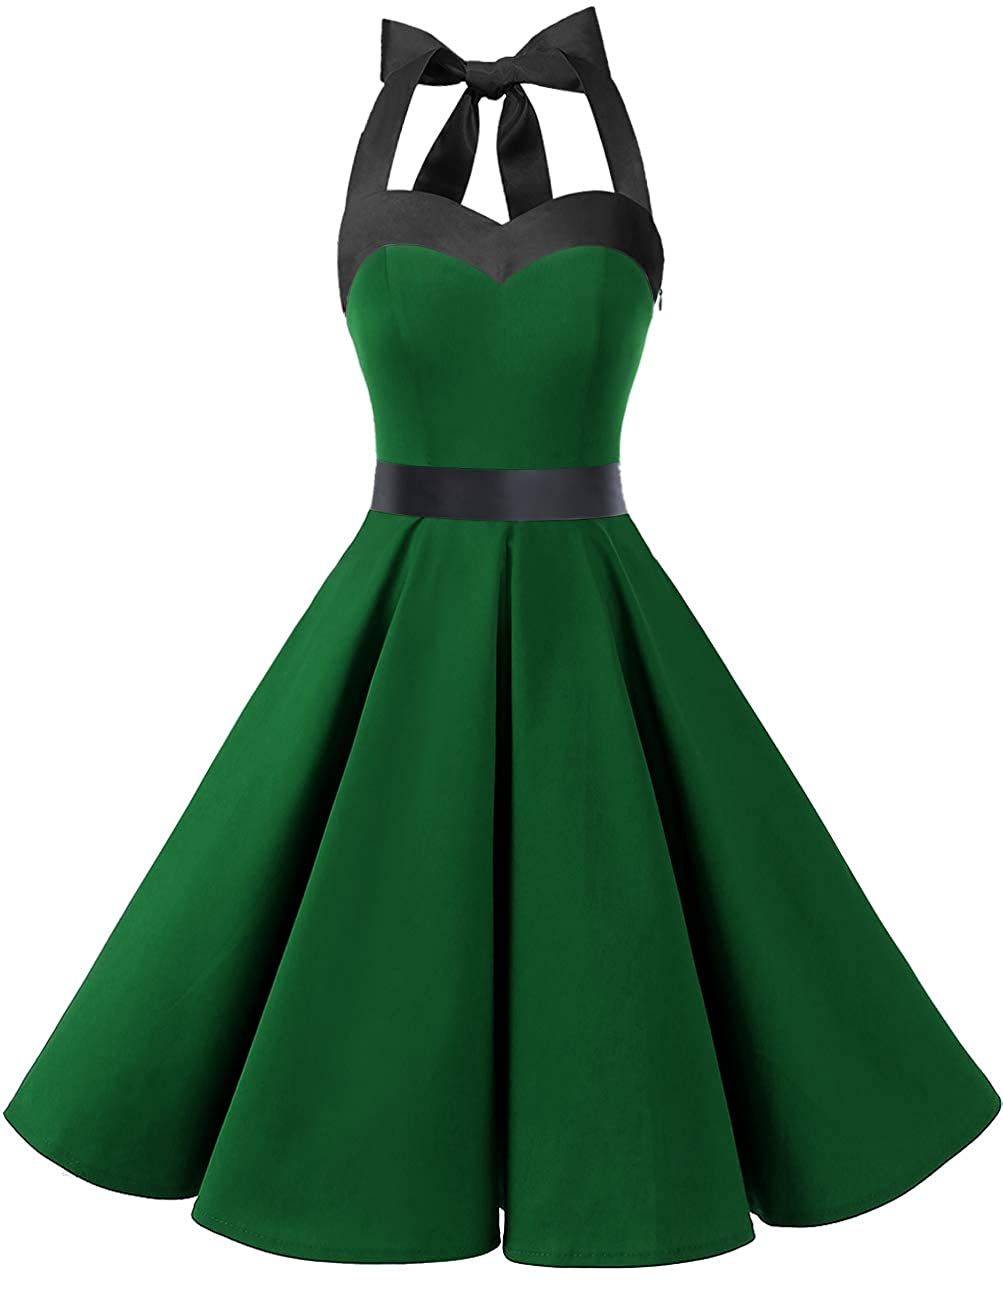 TALLA S. DRESSTELLS® Halter 50s Rockabilly Polka Dots Audrey Dress Retro Cocktail Dress Green Black